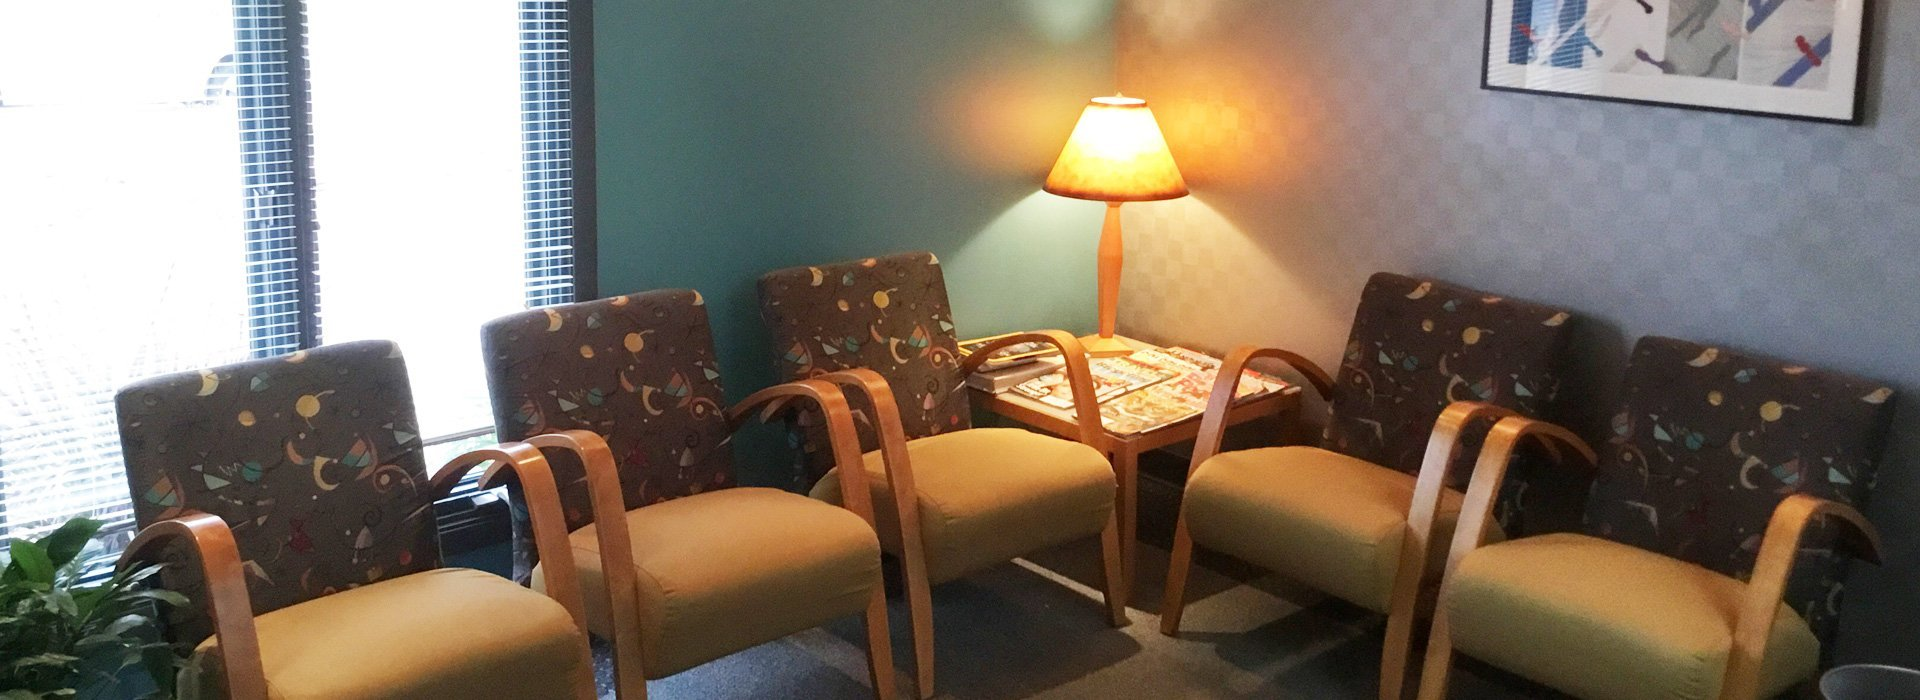 Max Menacher JR., DDS Interior